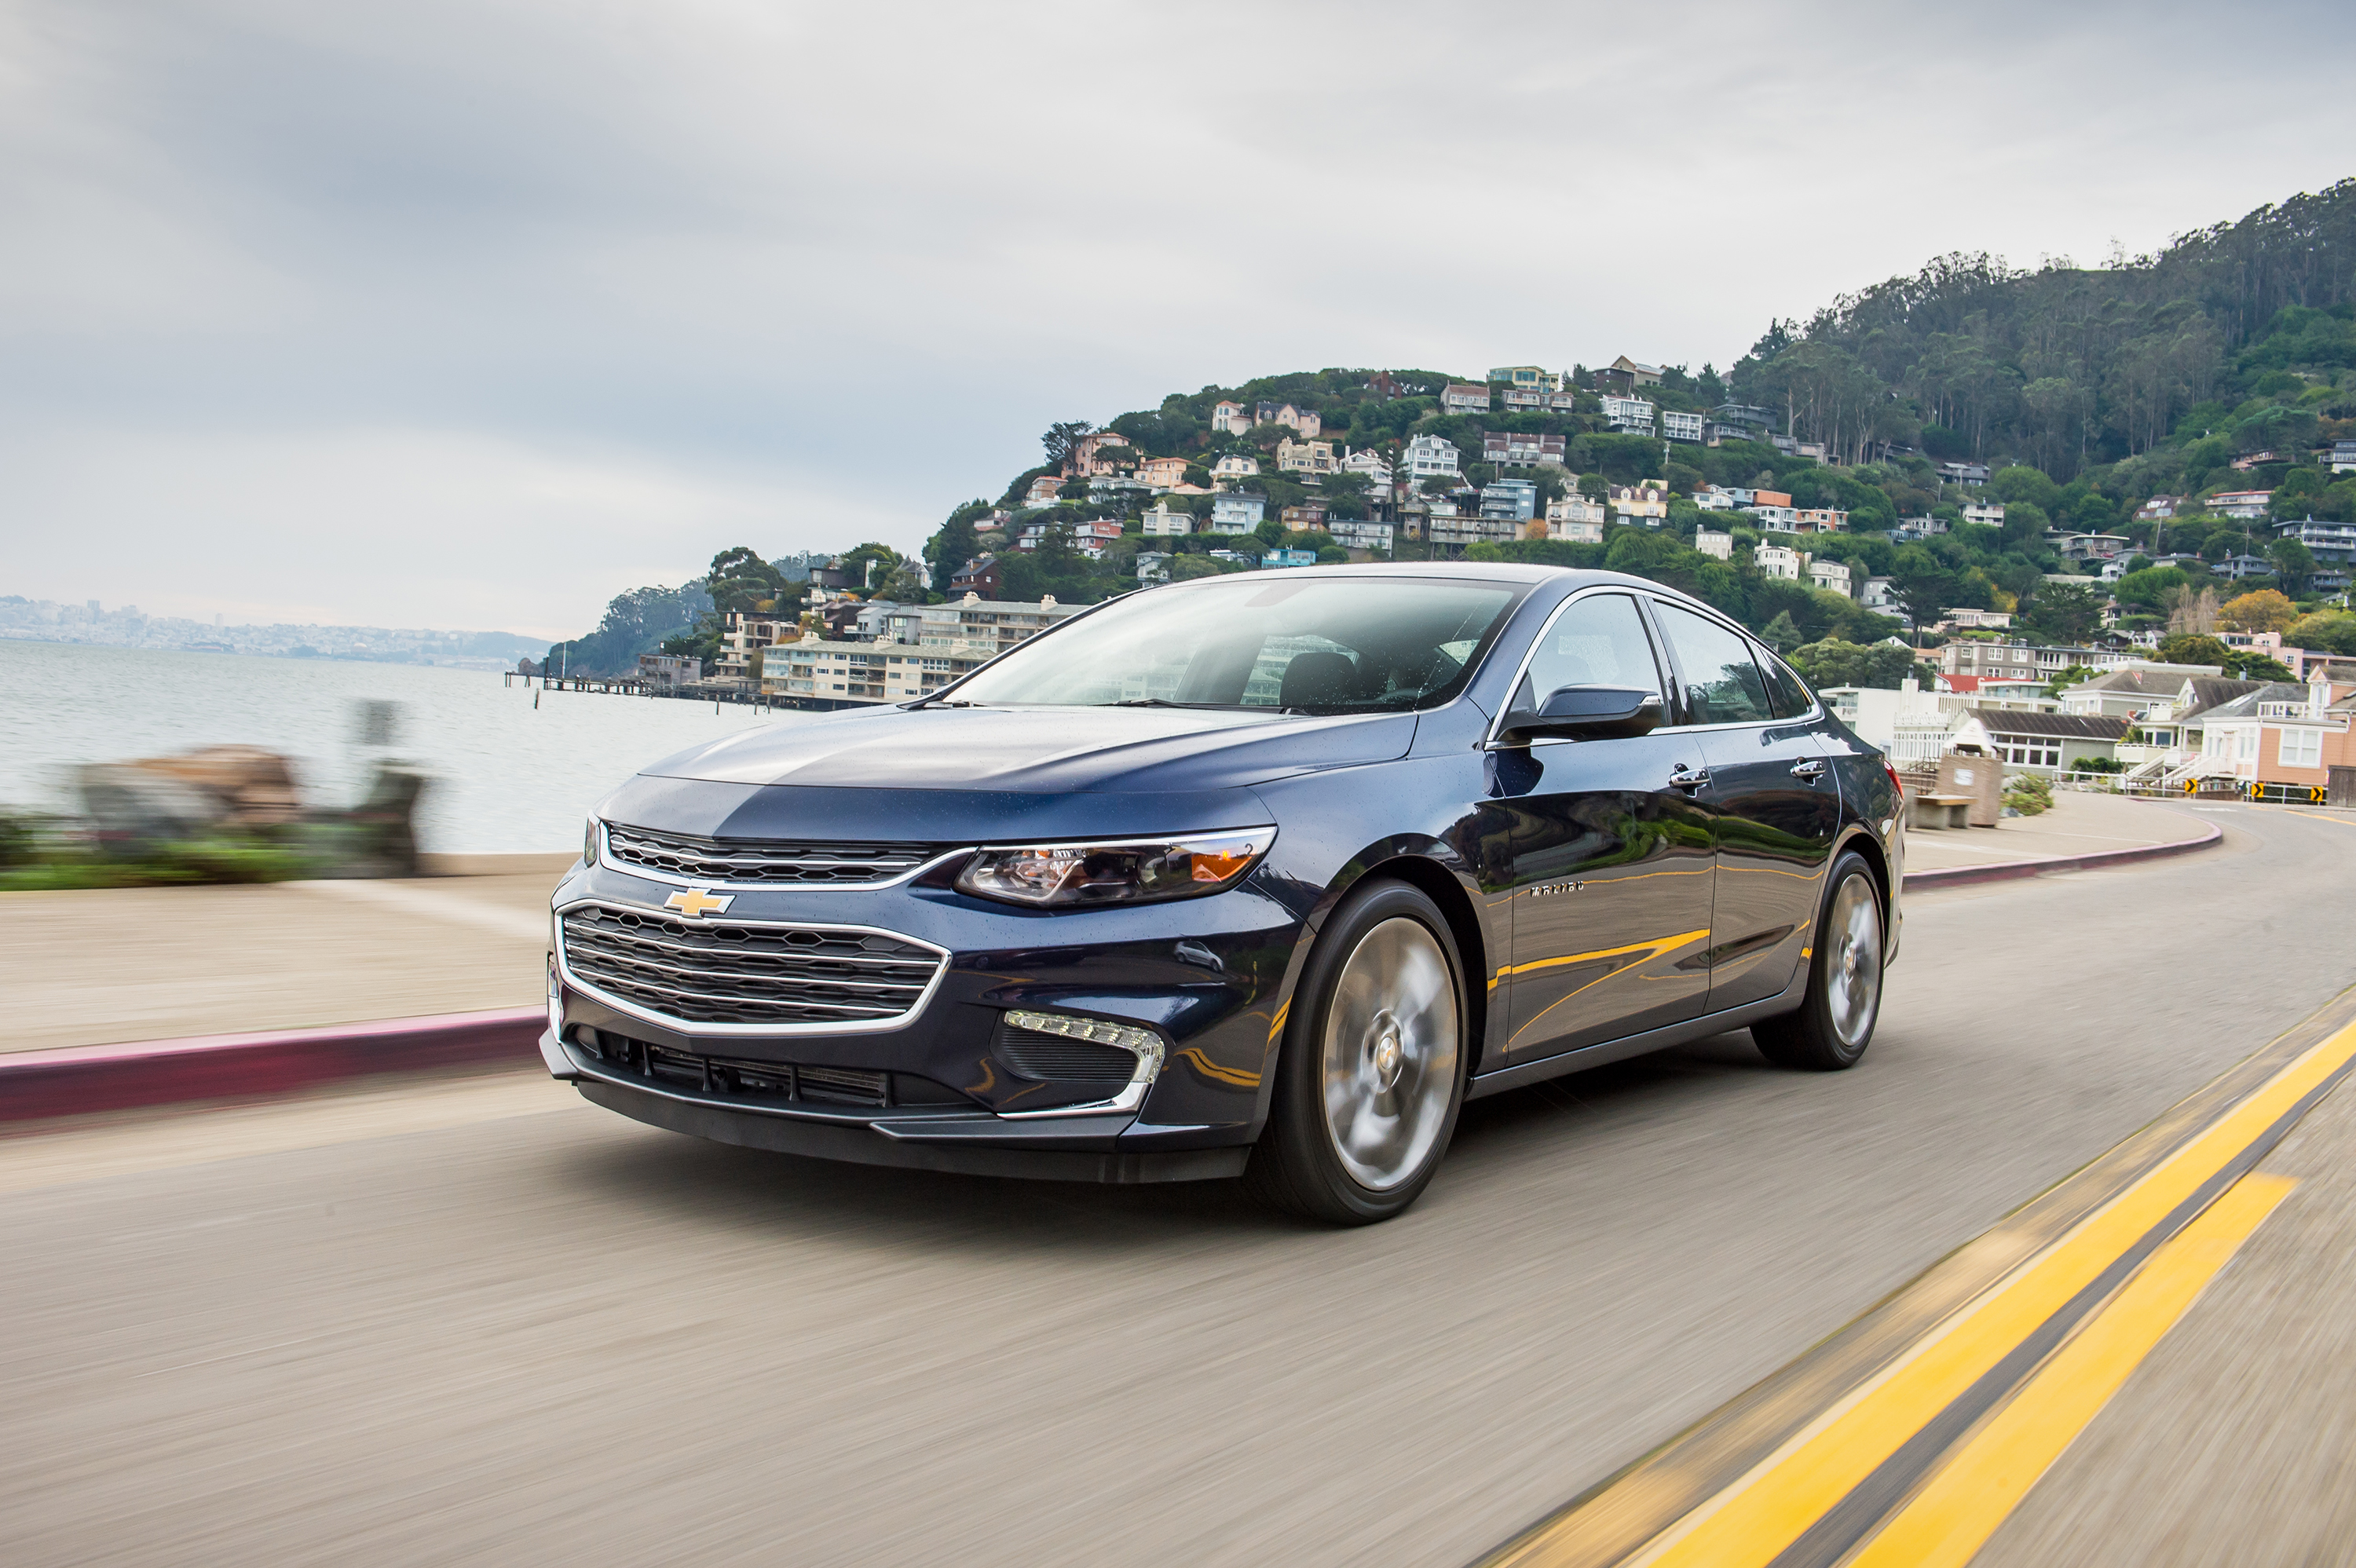 2016 Chevy Cars >> New Chevrolet Malibu Silverado Most Searched Vehicles On